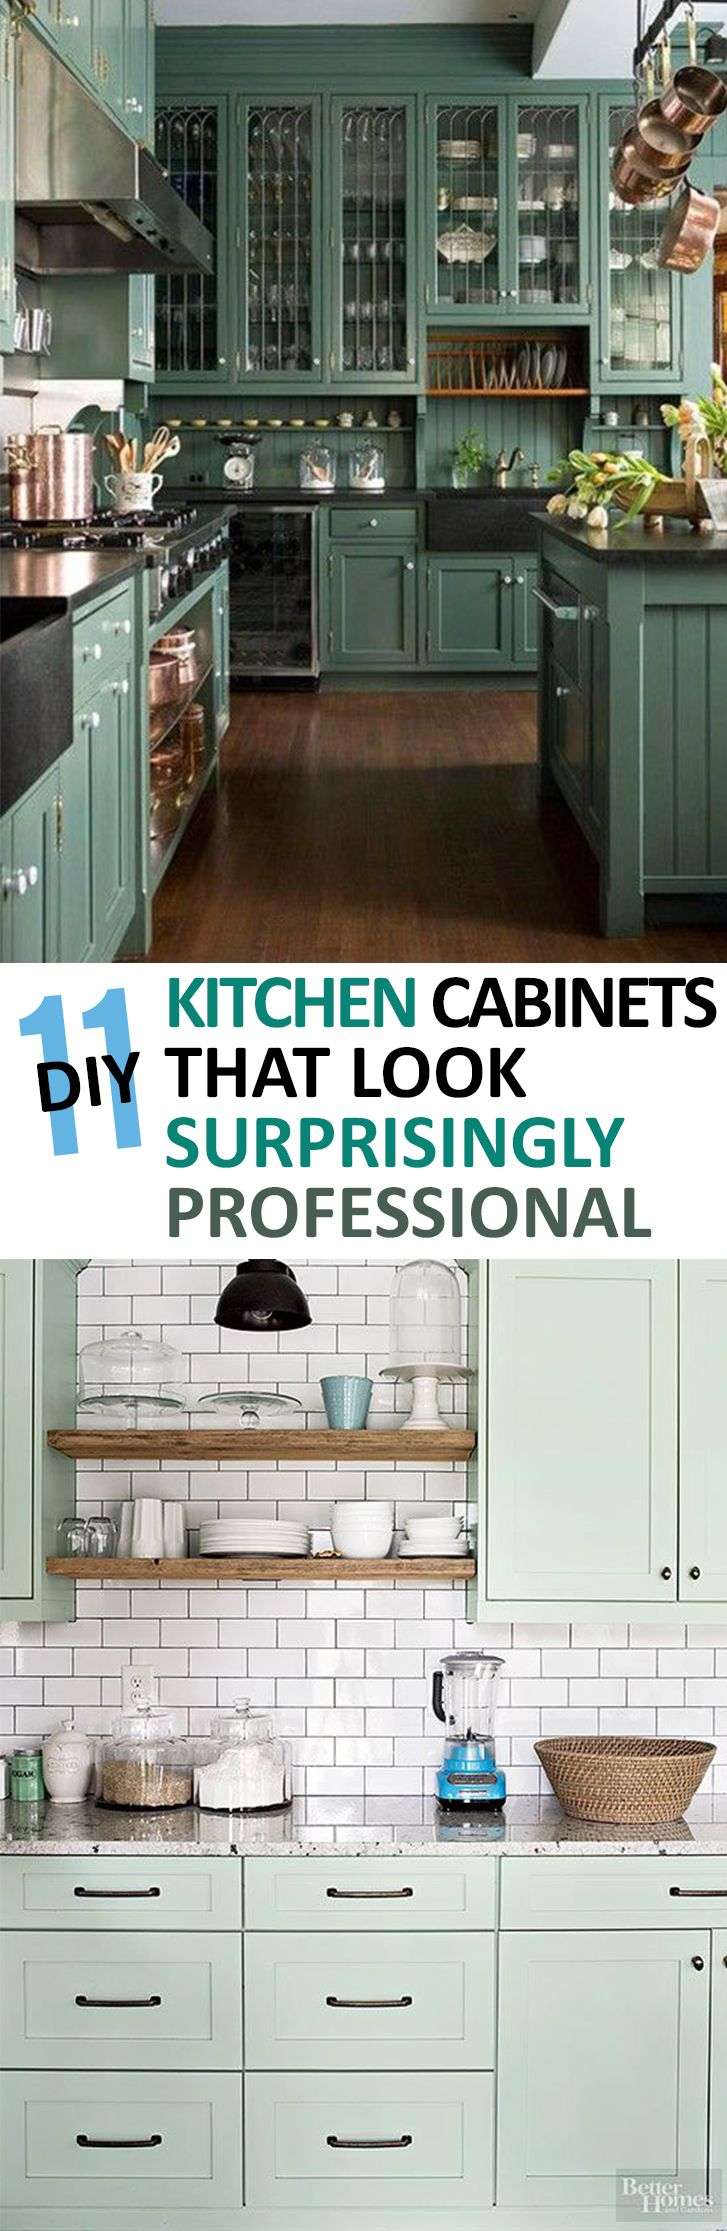 Homemade kitchen cabinets ideas - 11 Diy Kitchen Cabinets That Look Surprisingly Professional